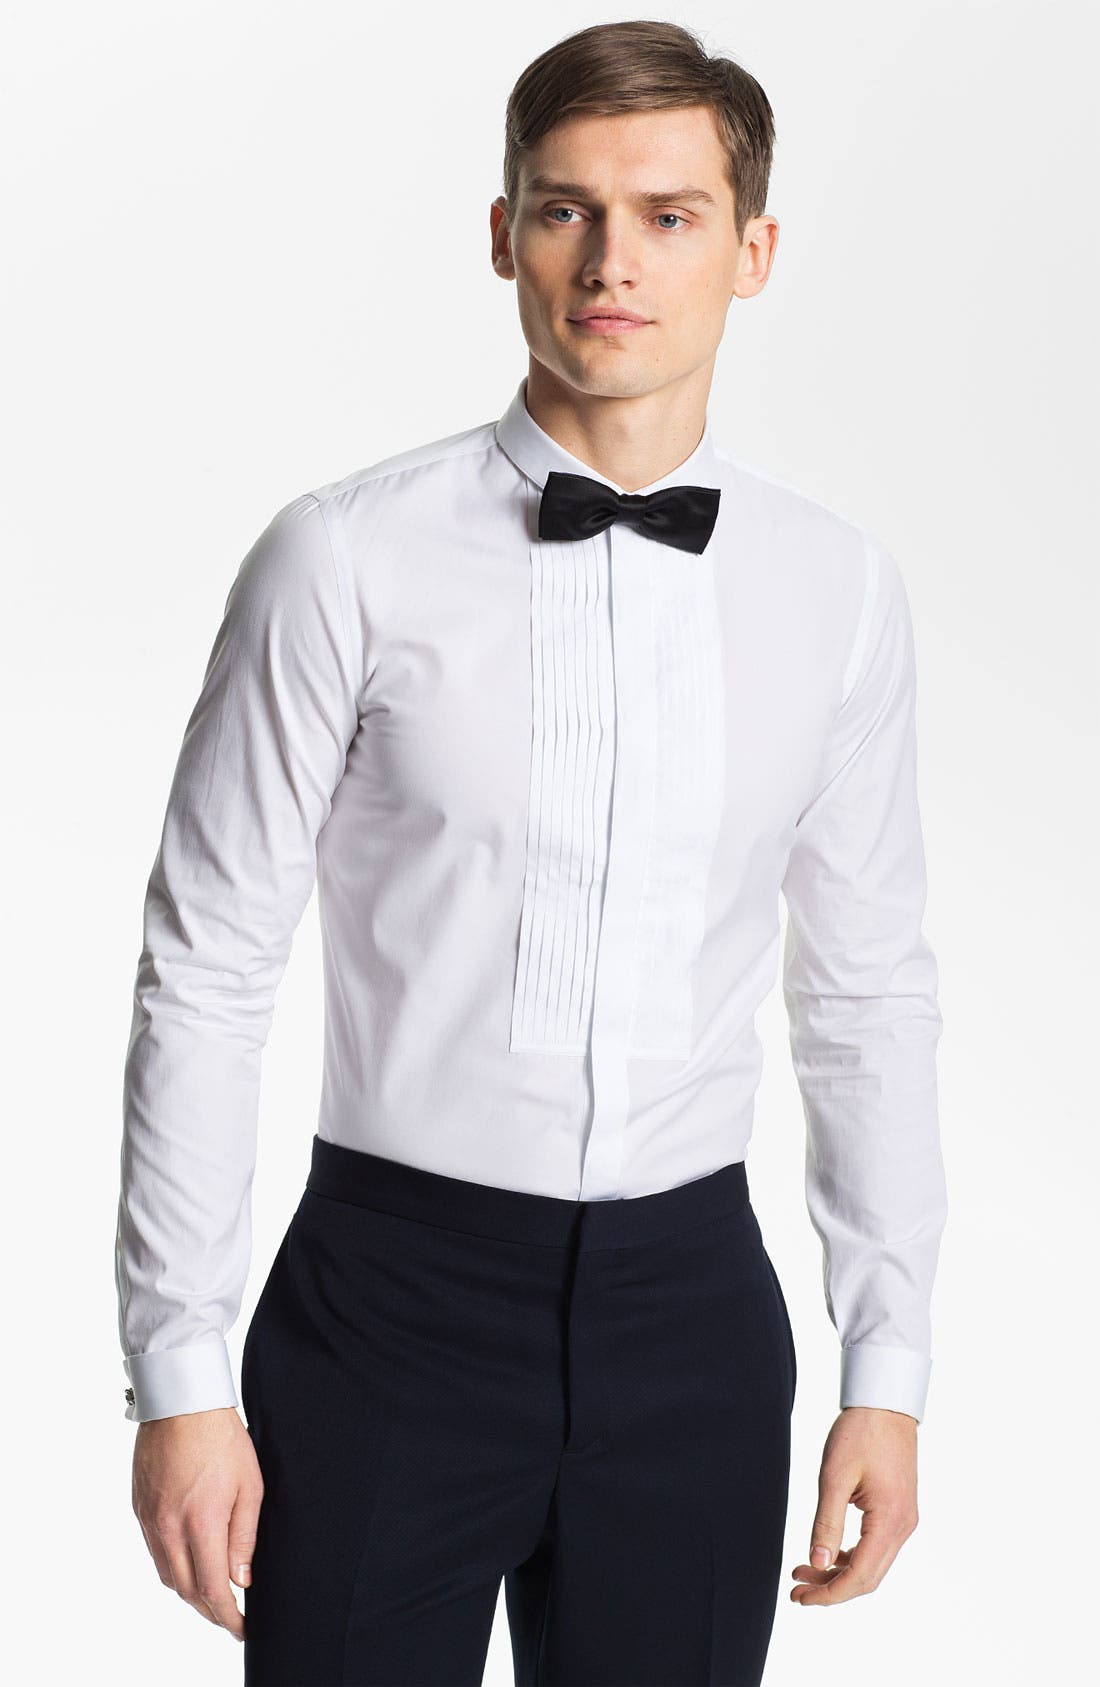 Main Image - Burberry Prorsum Cotton Poplin Tuxedo Shirt